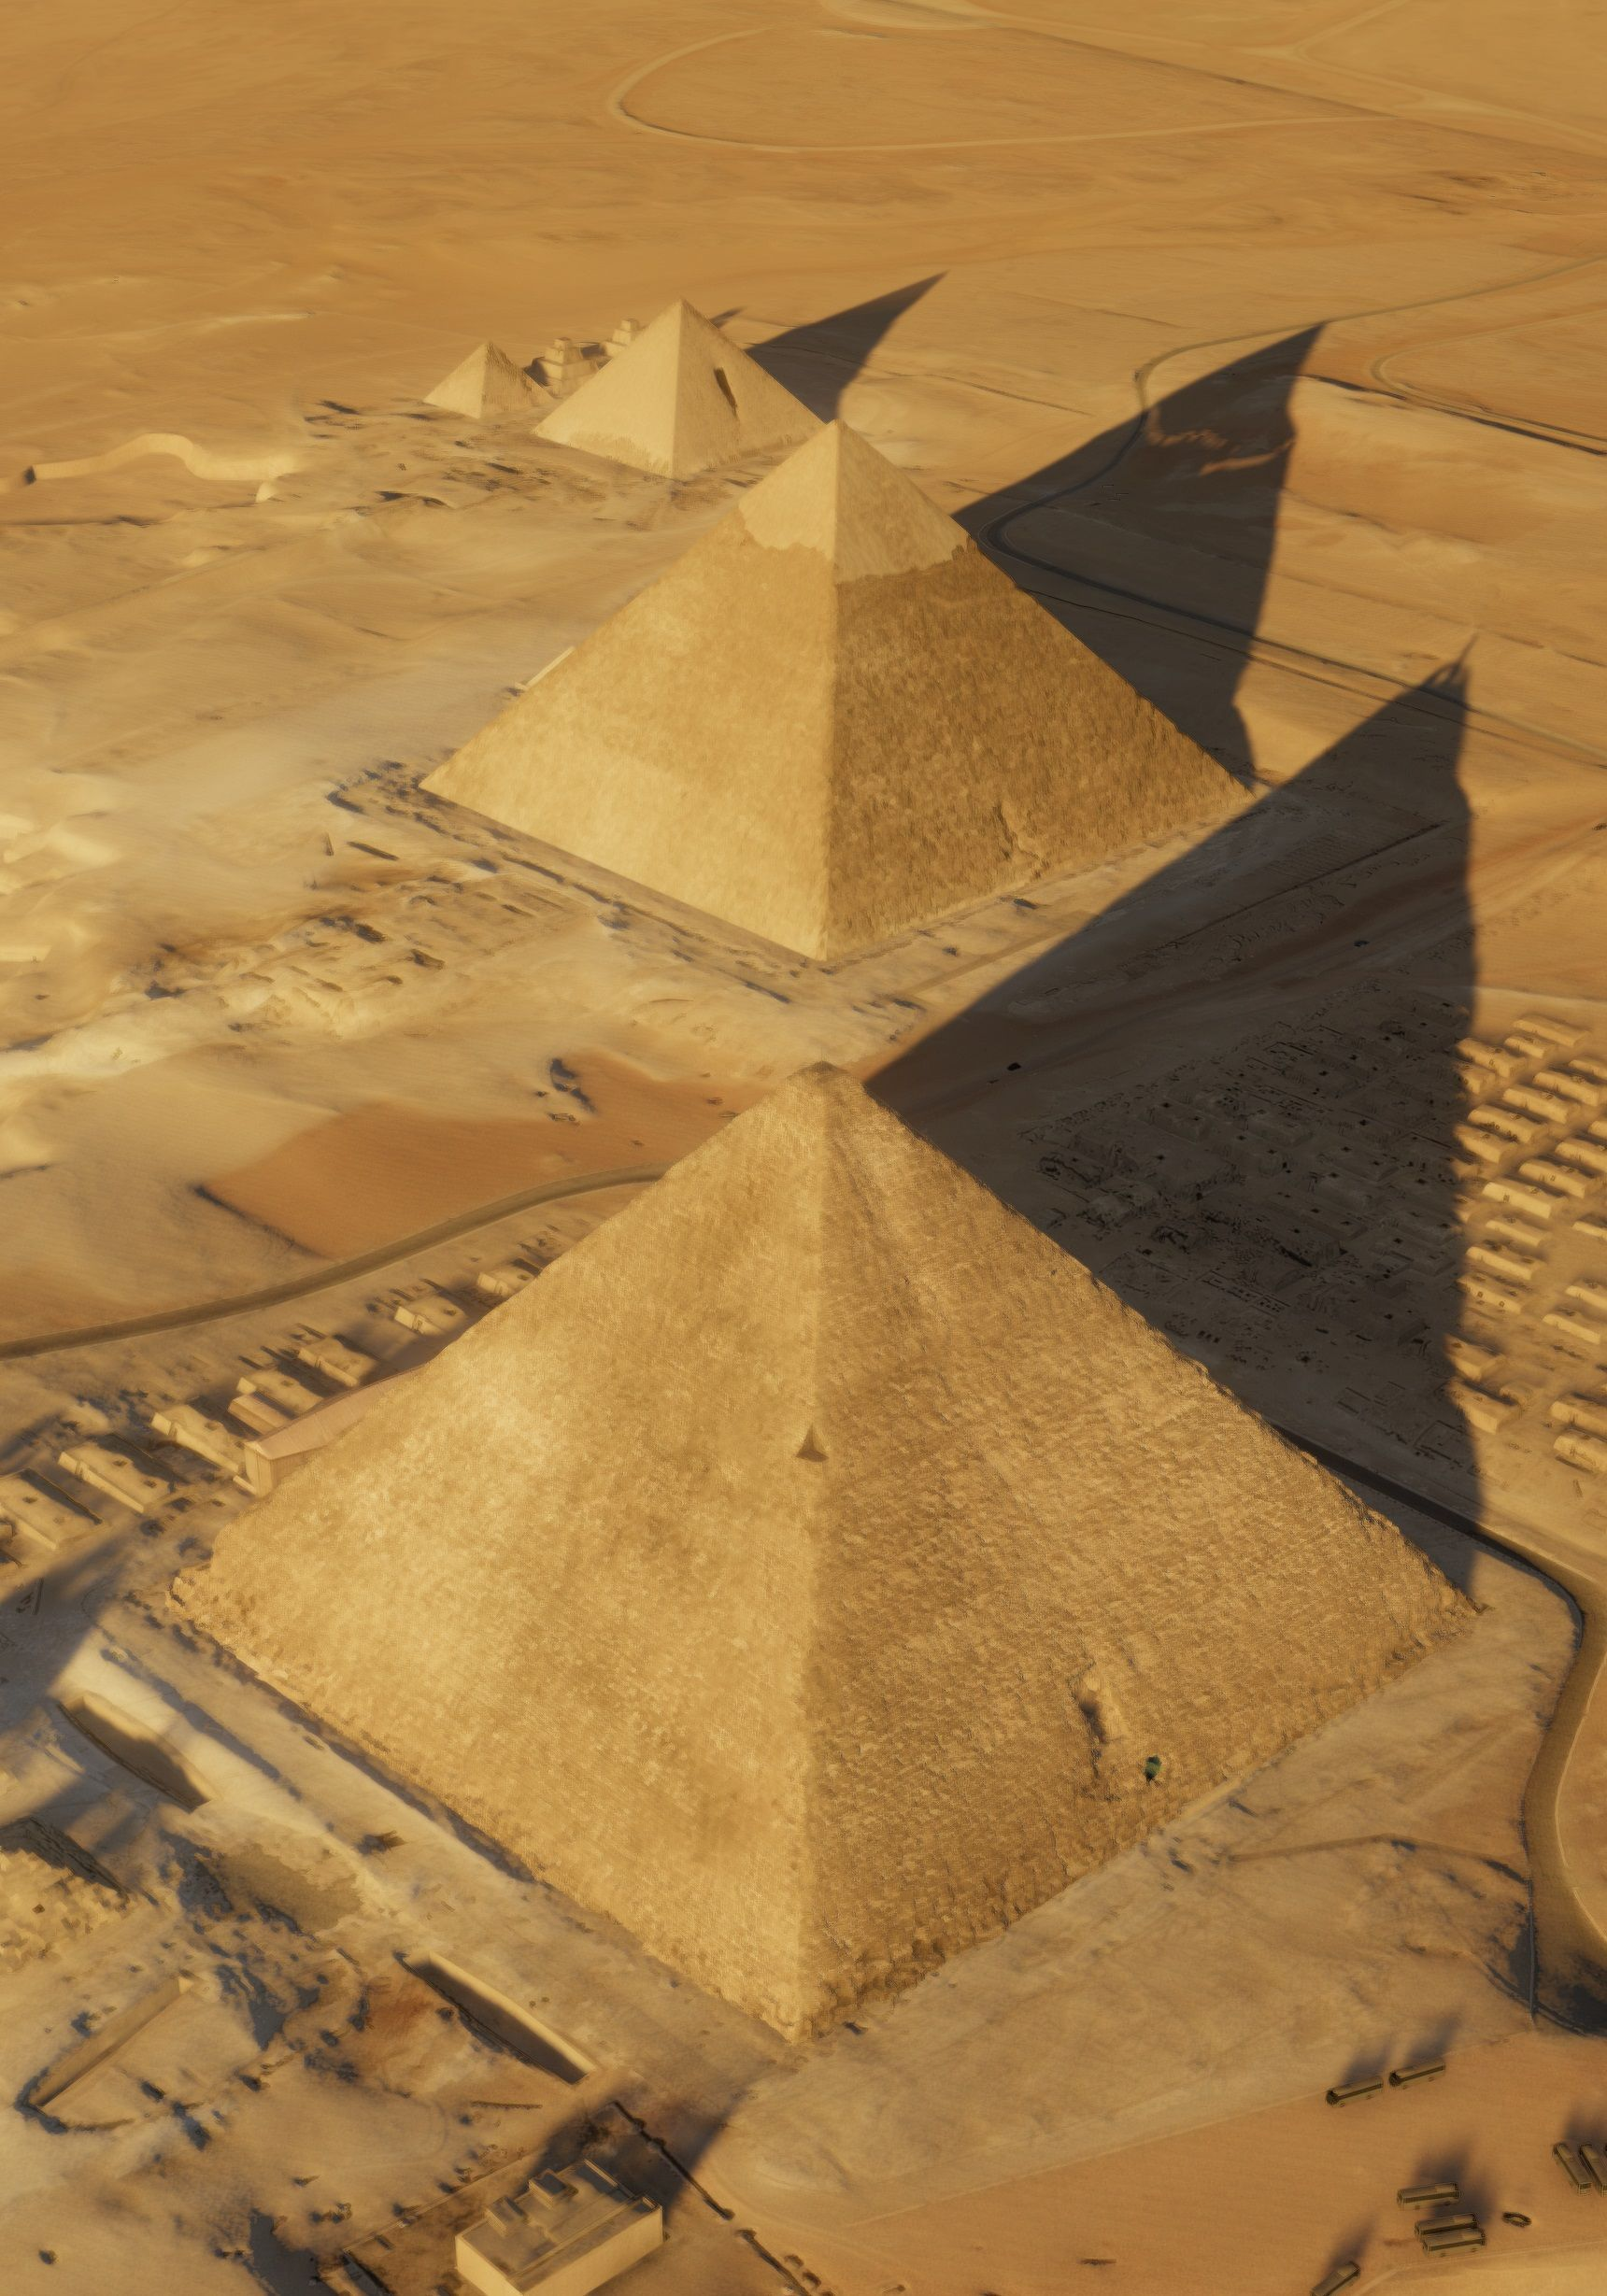 Khufus-Pyramid-aerial-view